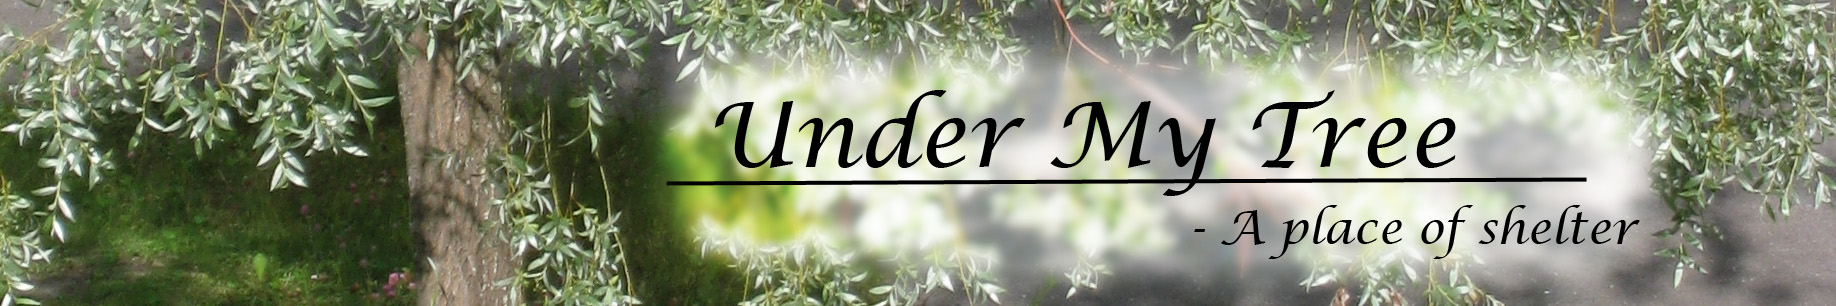 under my tree logo